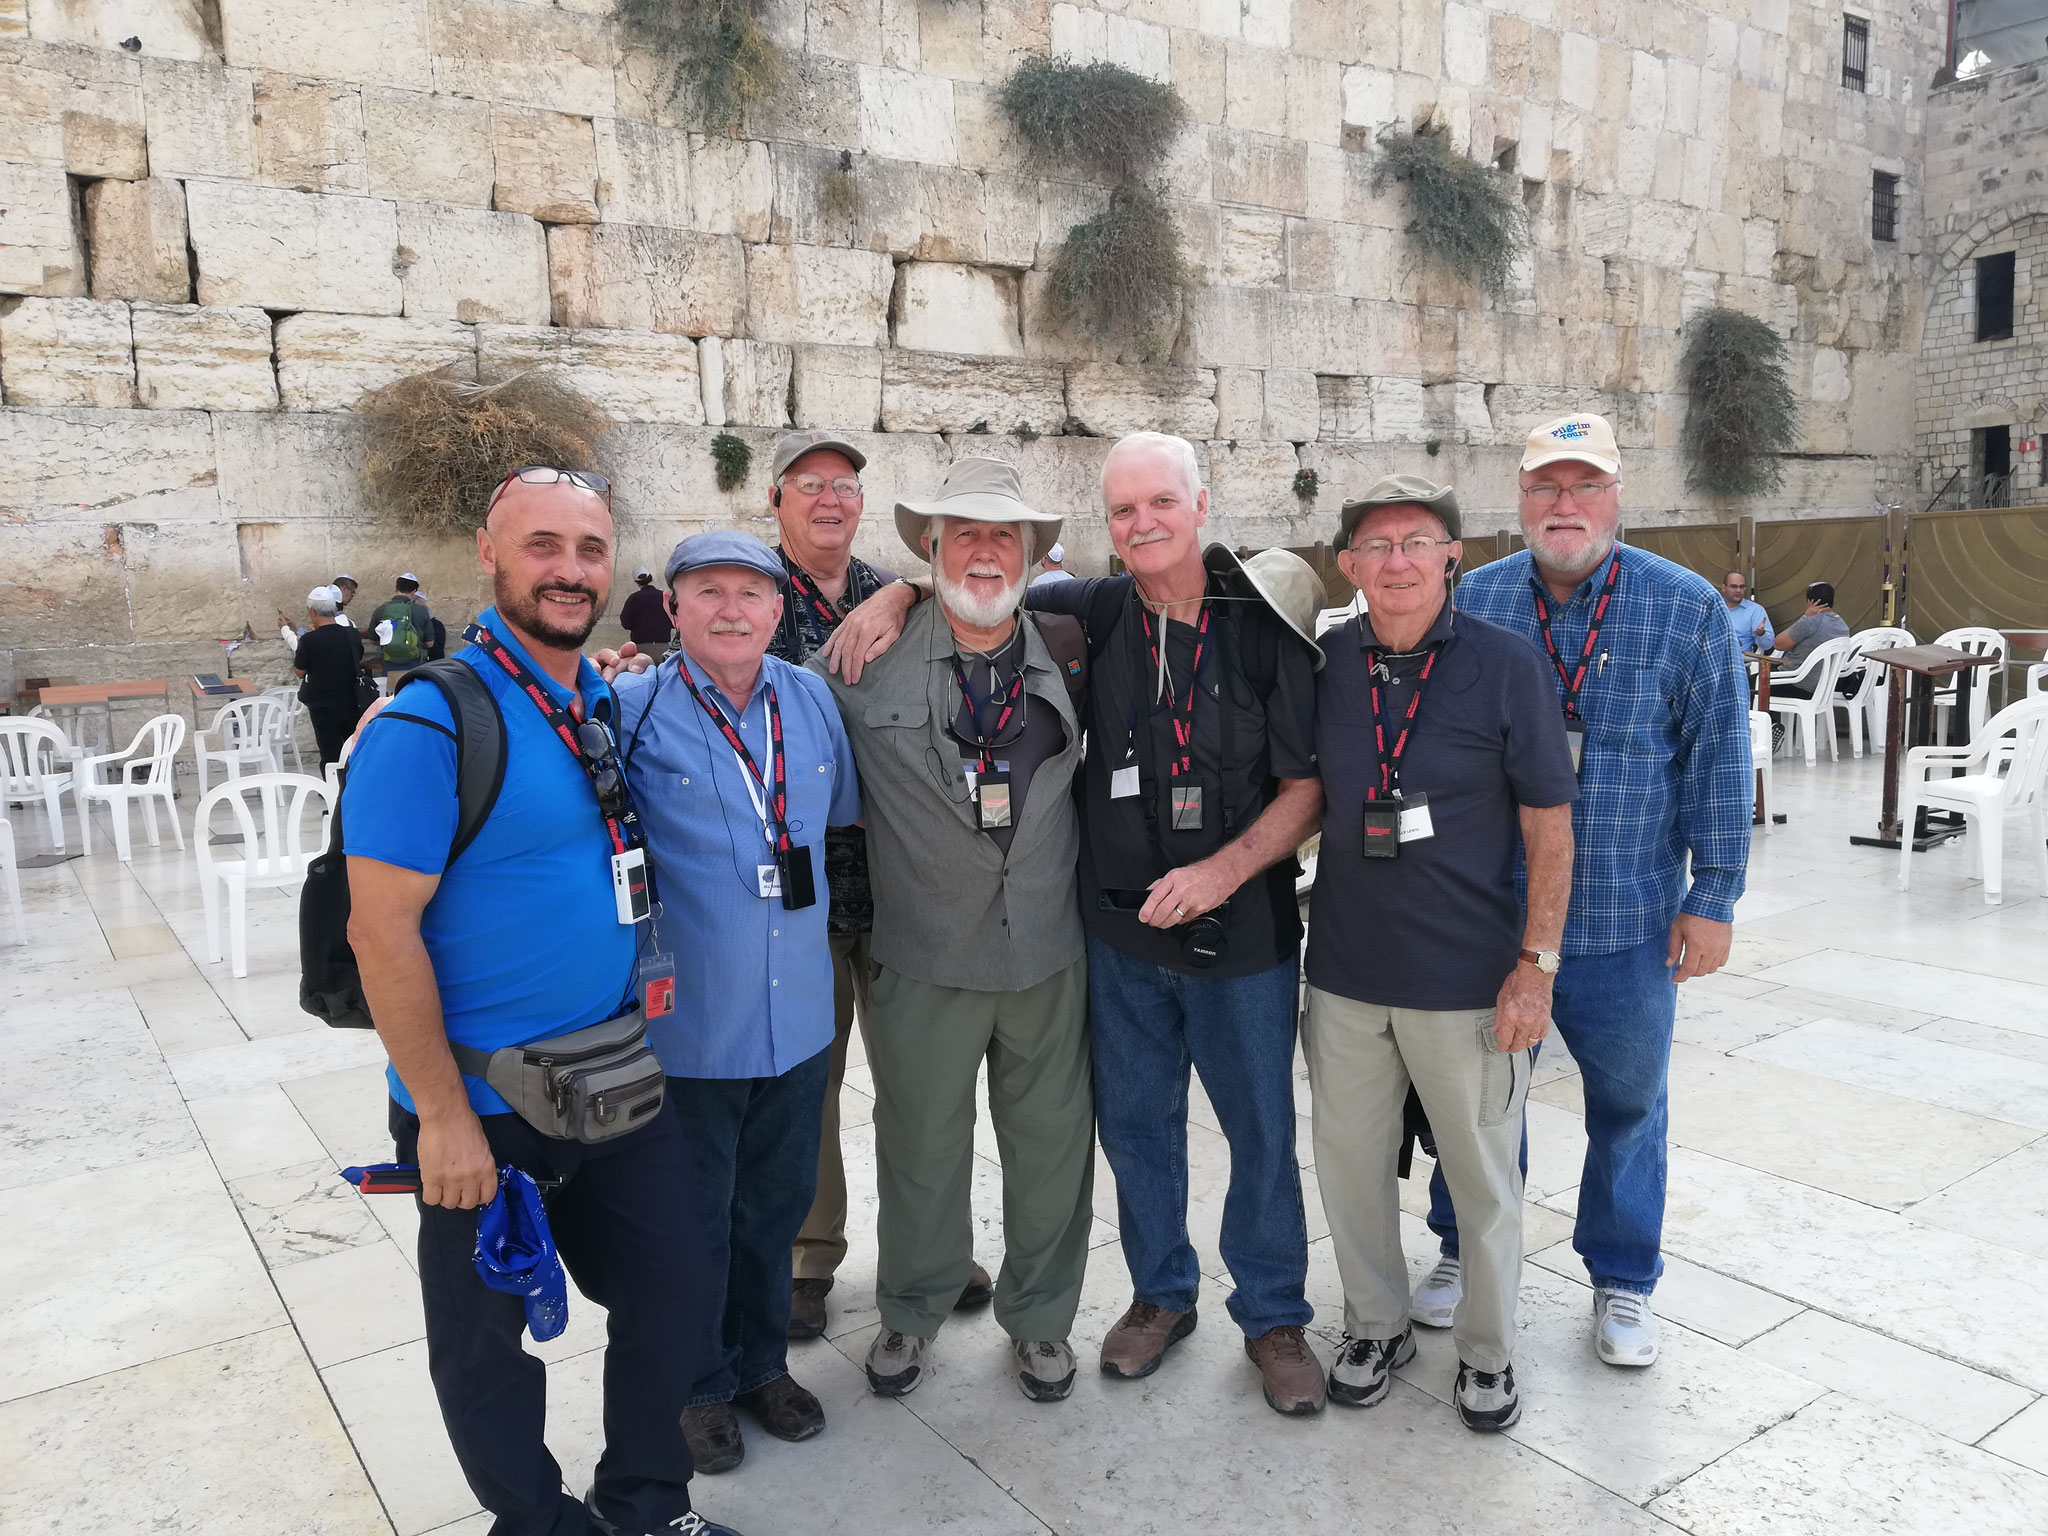 With the guests from Texas at the Western Wall, 2018